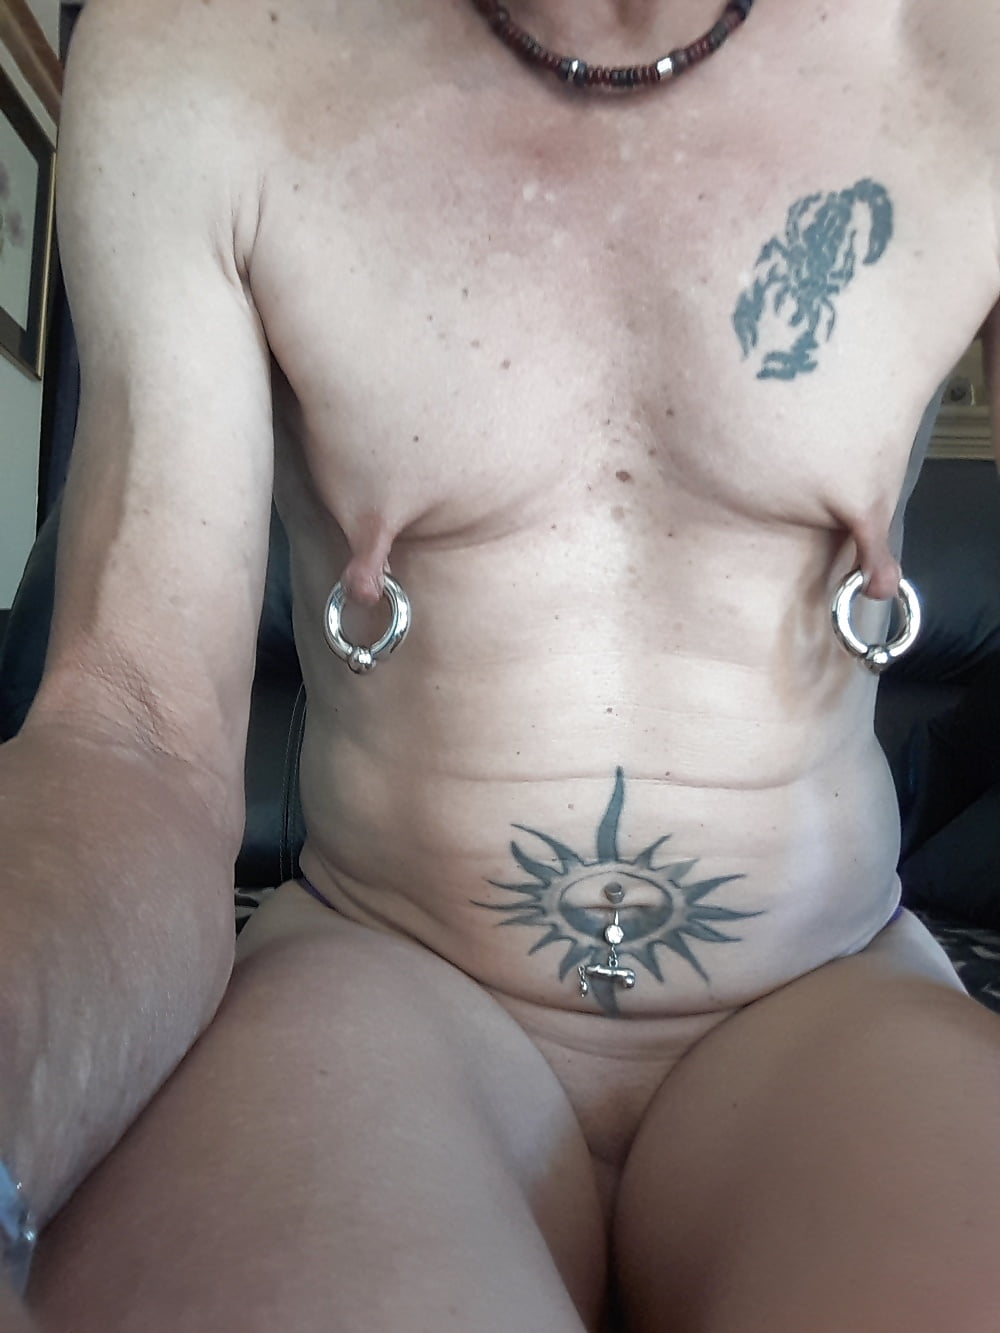 Pierced nipple pics and gay porn images